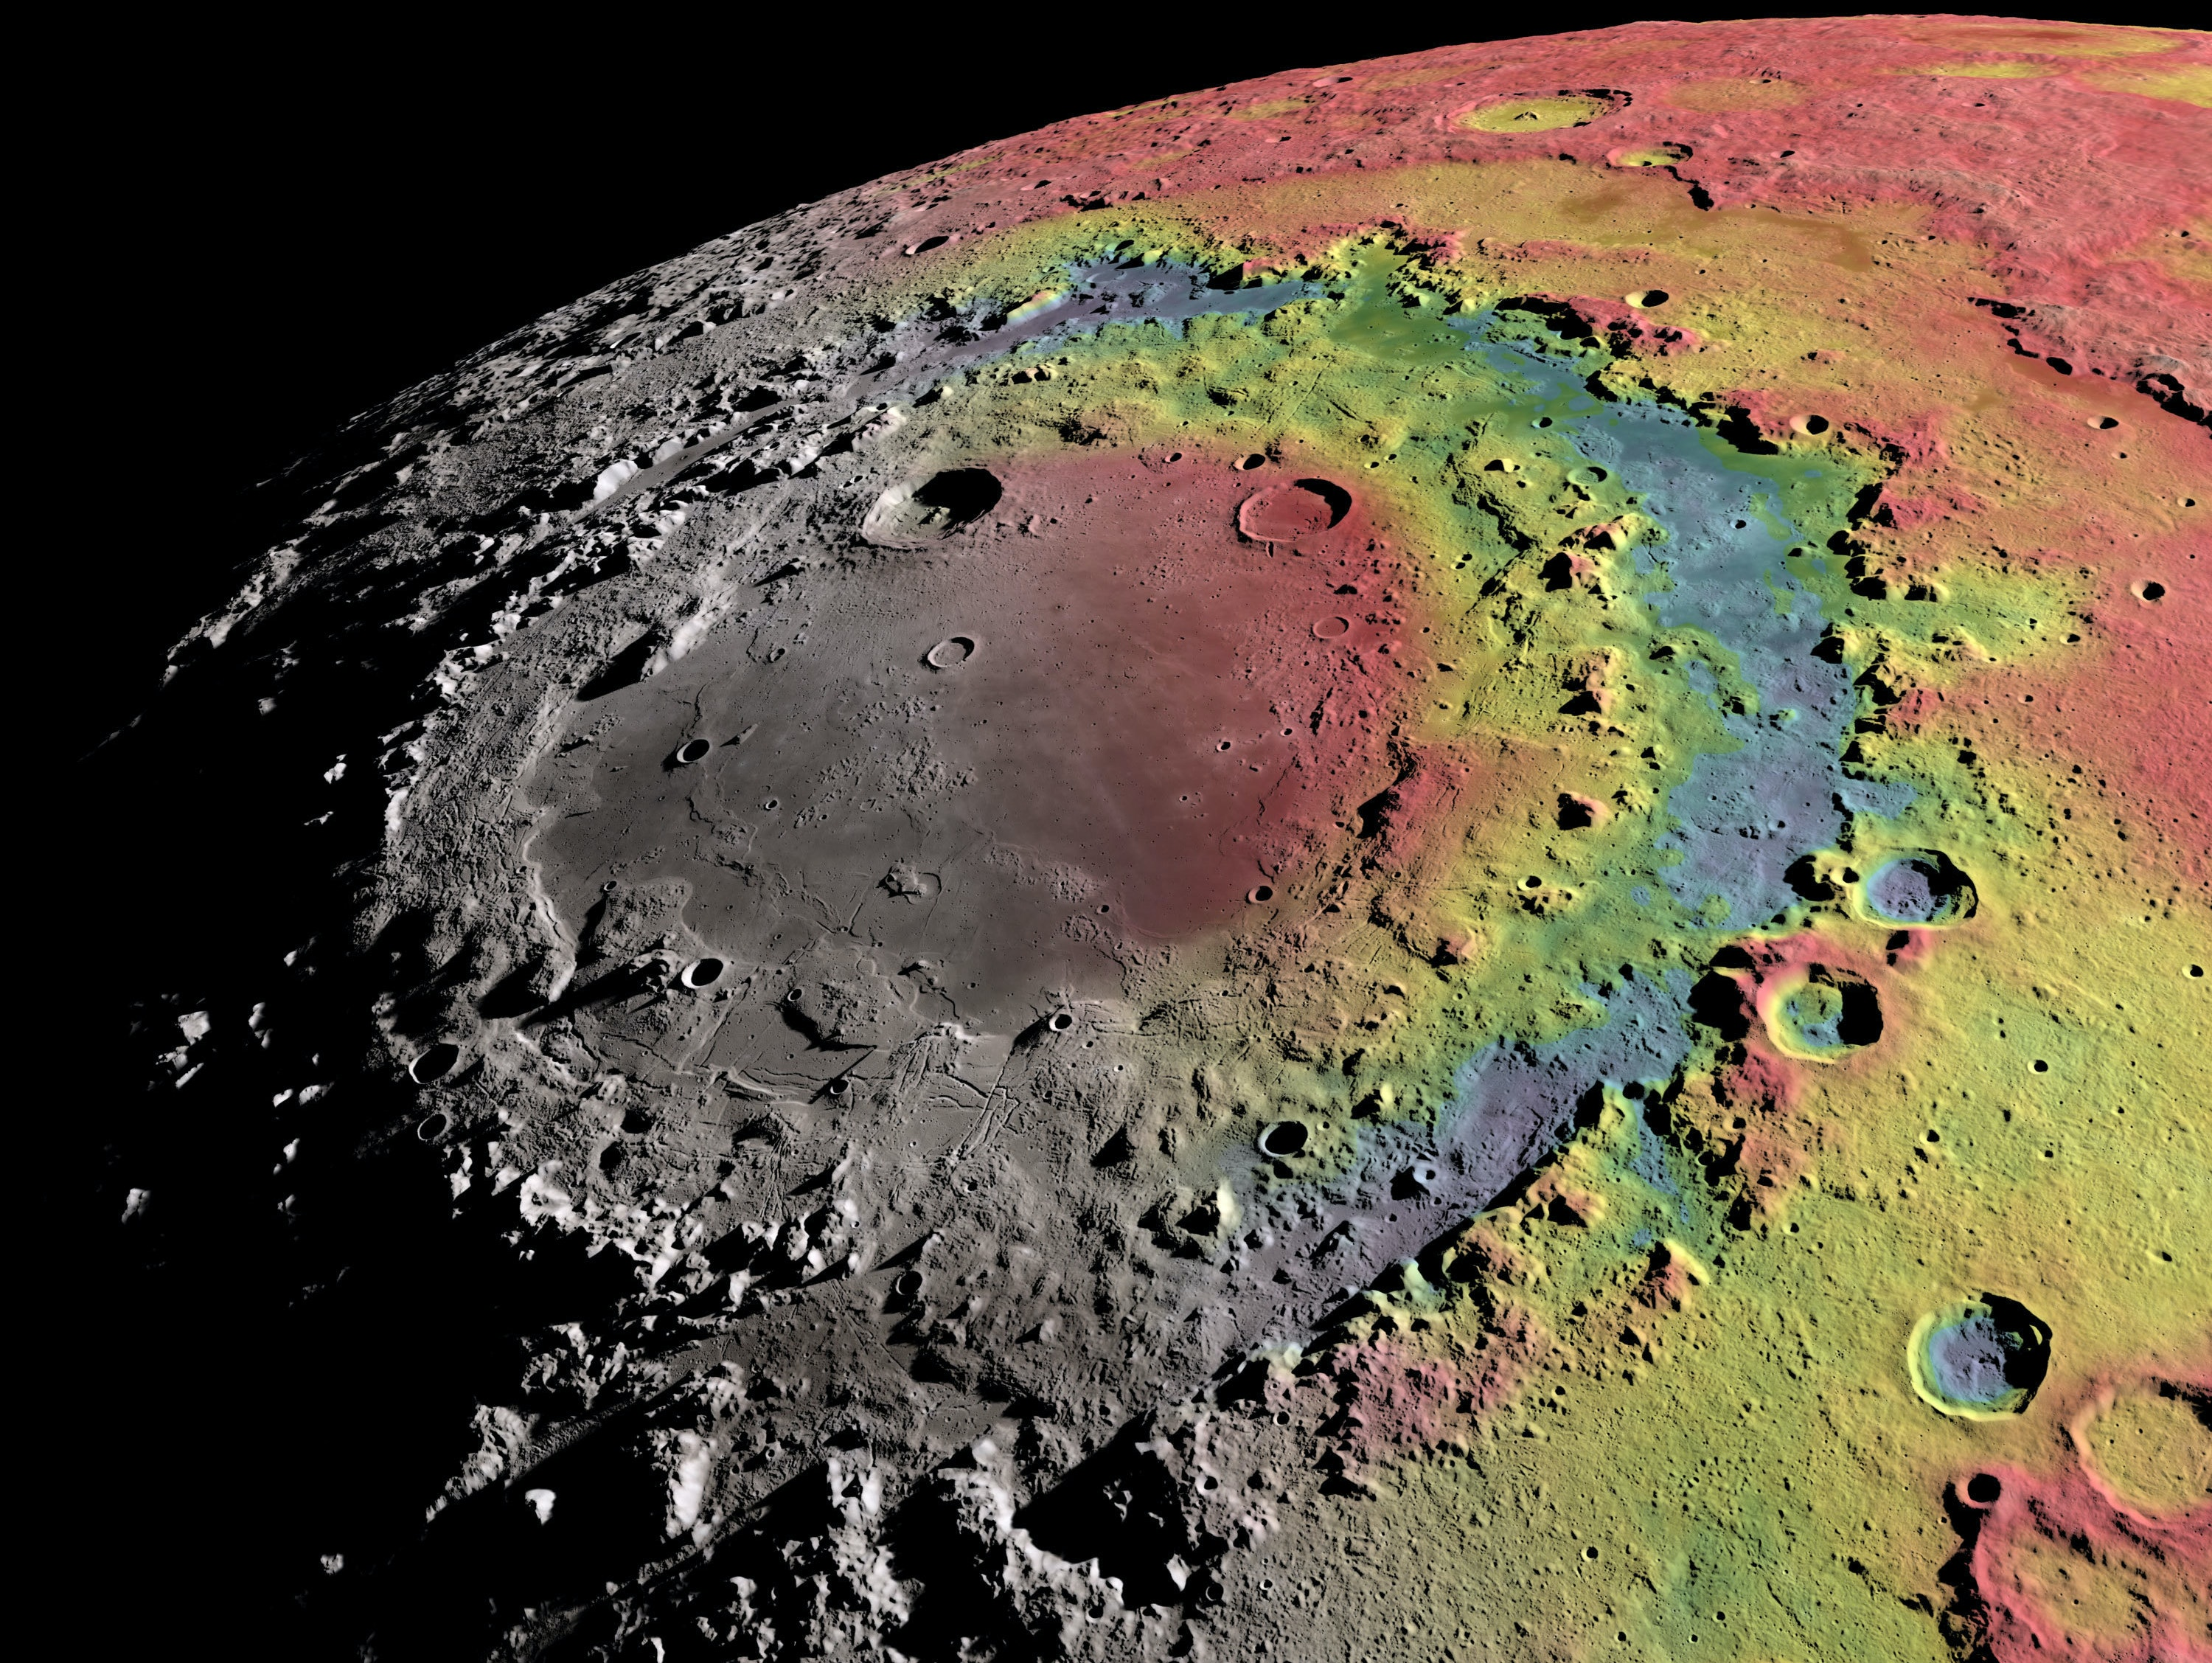 Astronomers Now Know How the Moon Got Its Bulls-eye Crater